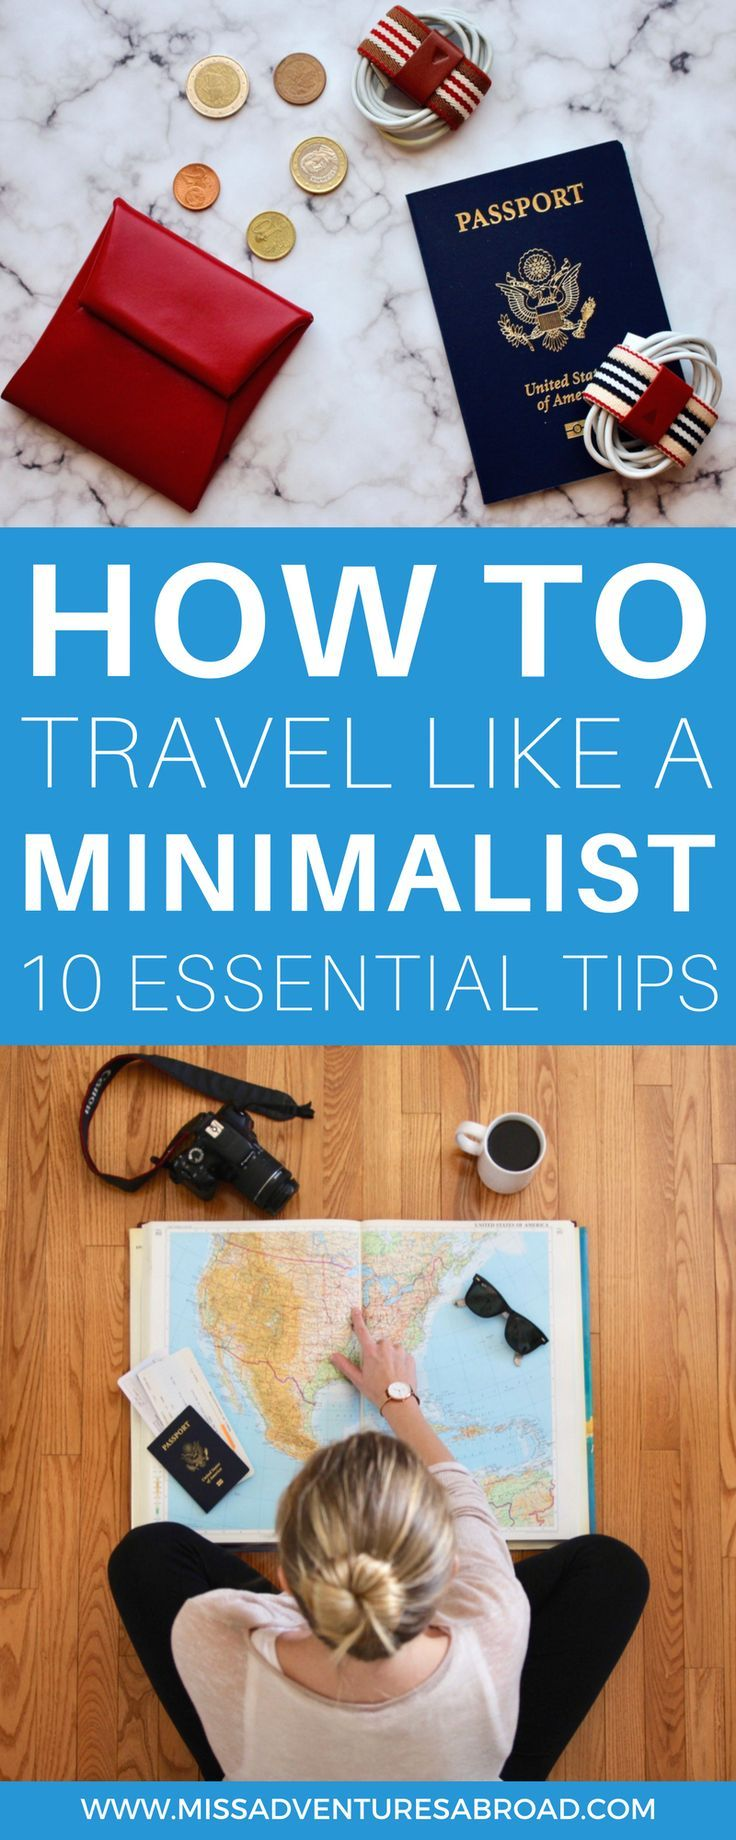 How To Travel Like A Minimalist: 10 Essential Tips. Have you ever wondered what it would be like to travel like a minimalist! Follow these 10 tips to learn how to simplify your travels and apply the concepts of minimalism to your adventures. By packing less, you'll be able to travel more deeply and more often!